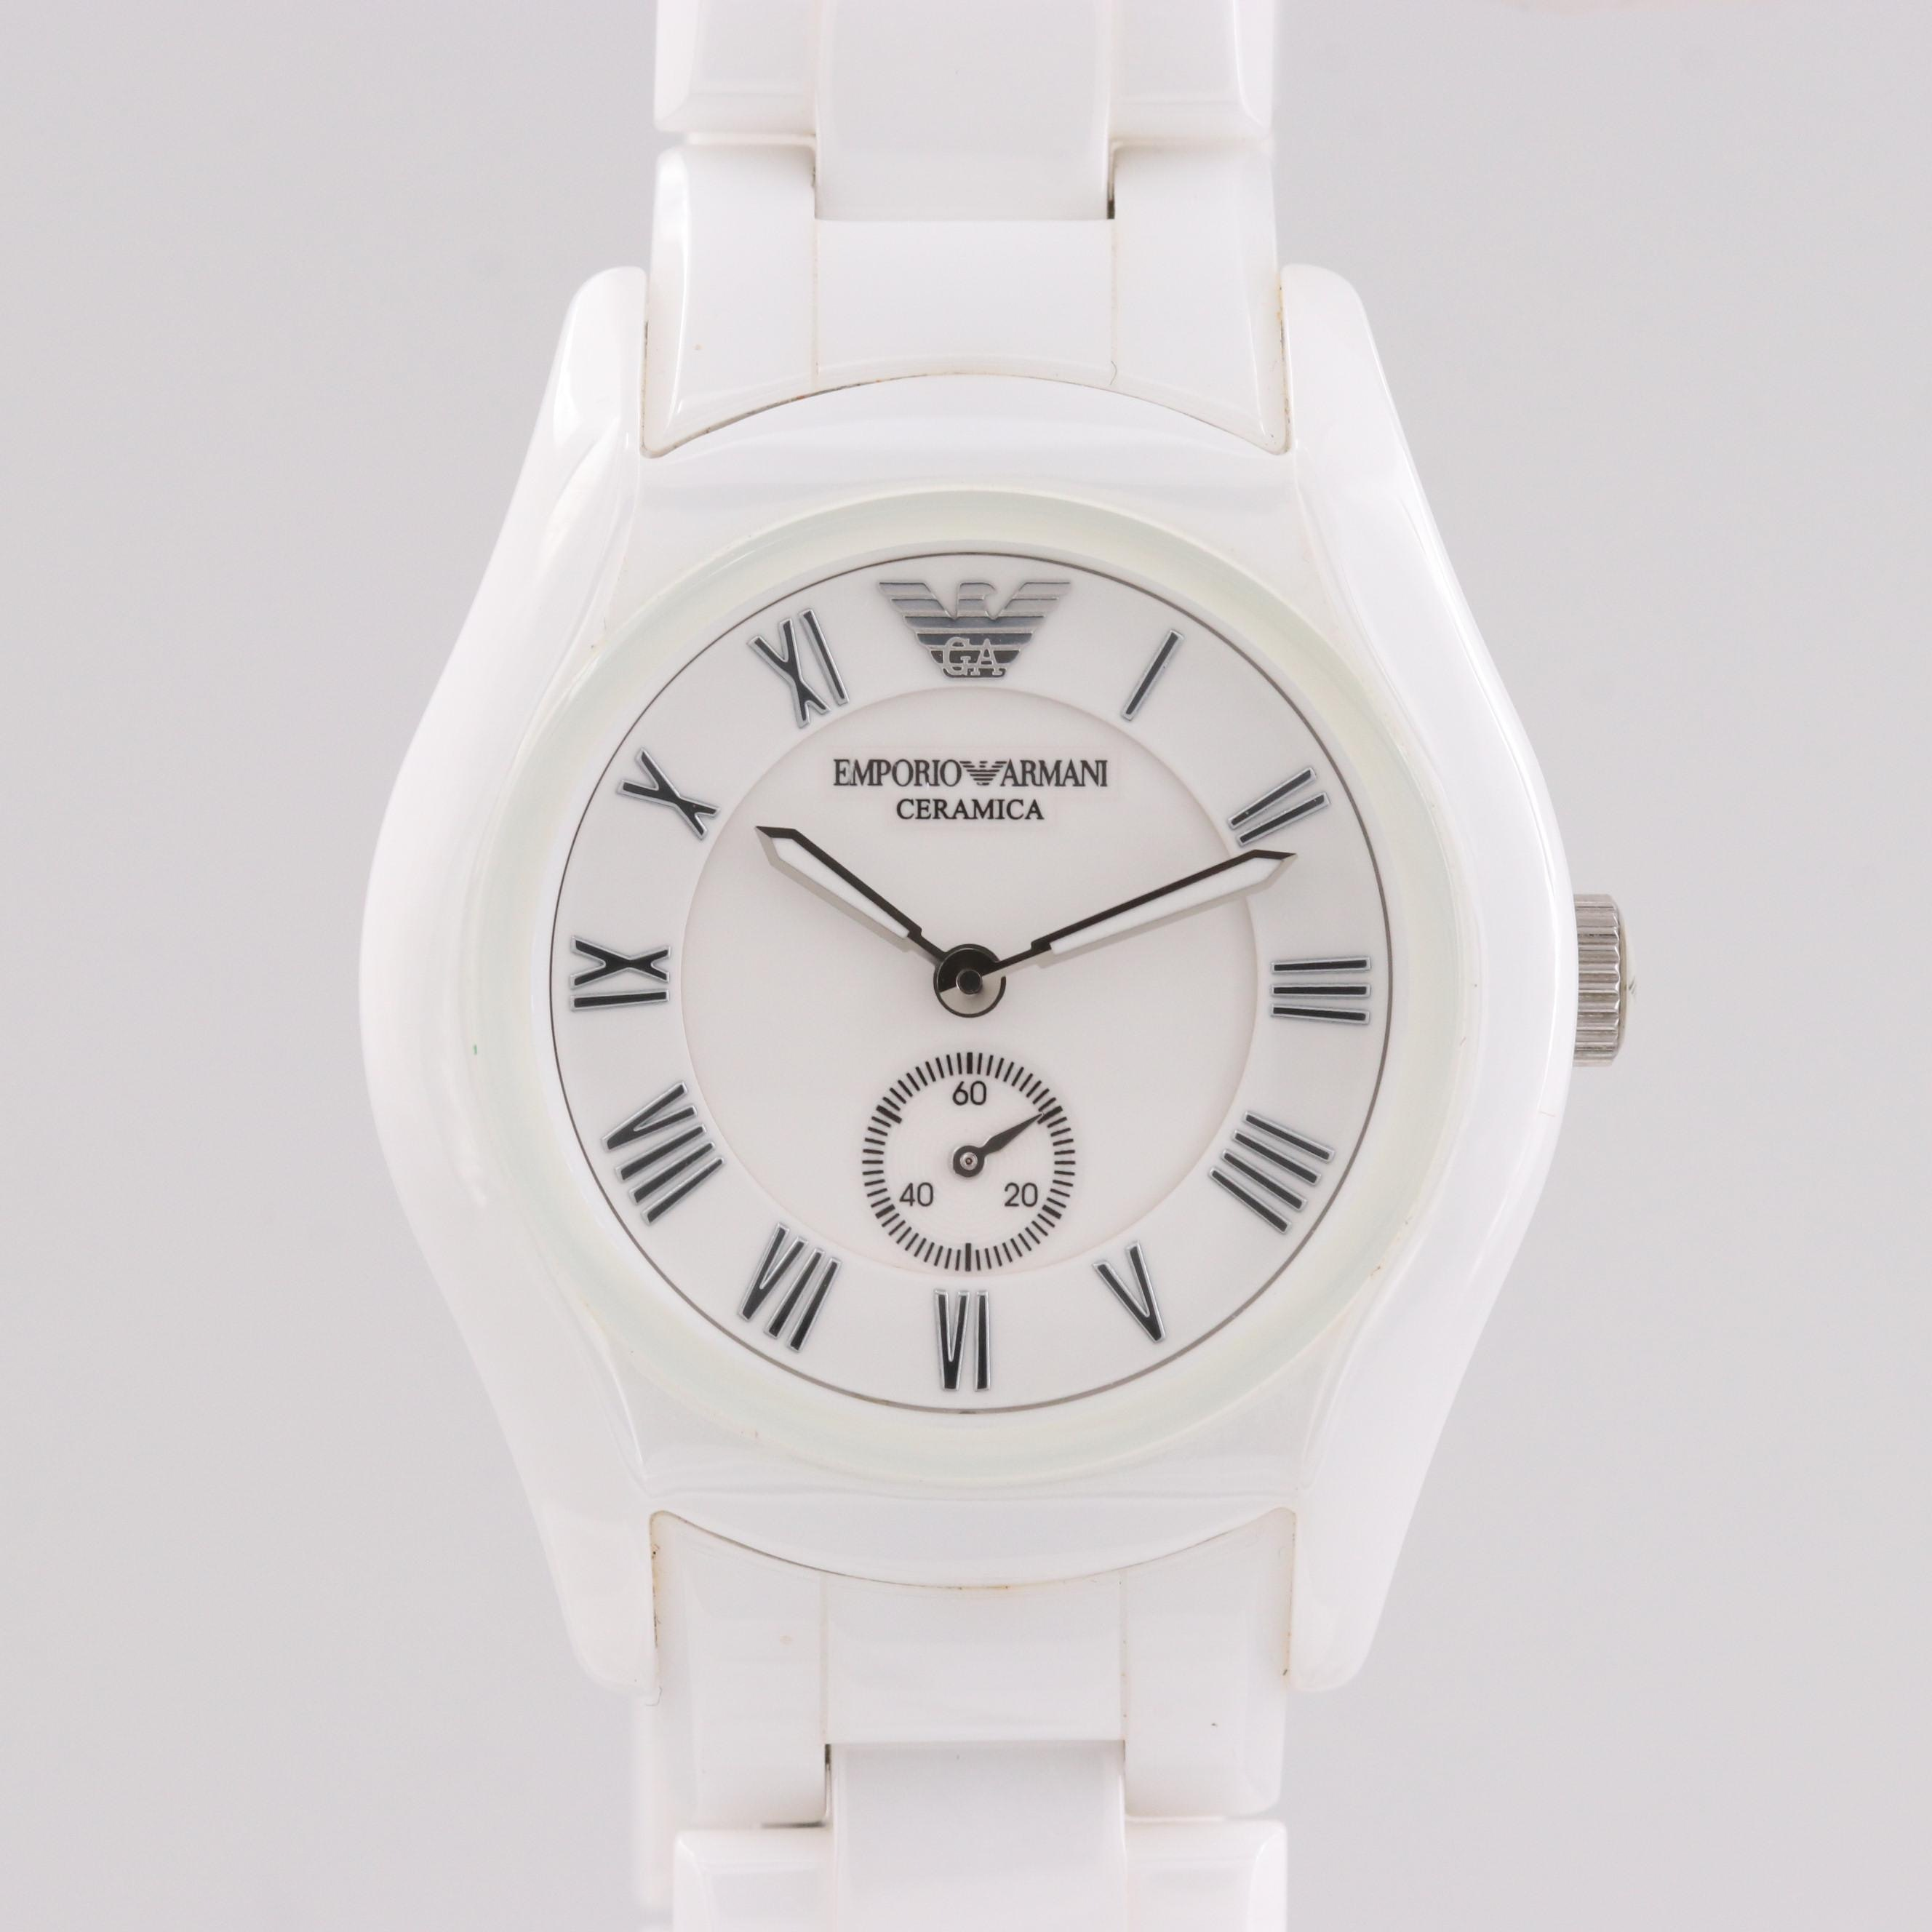 Emporio Armani Ceramica White Ceramic Quartz Wristwatch